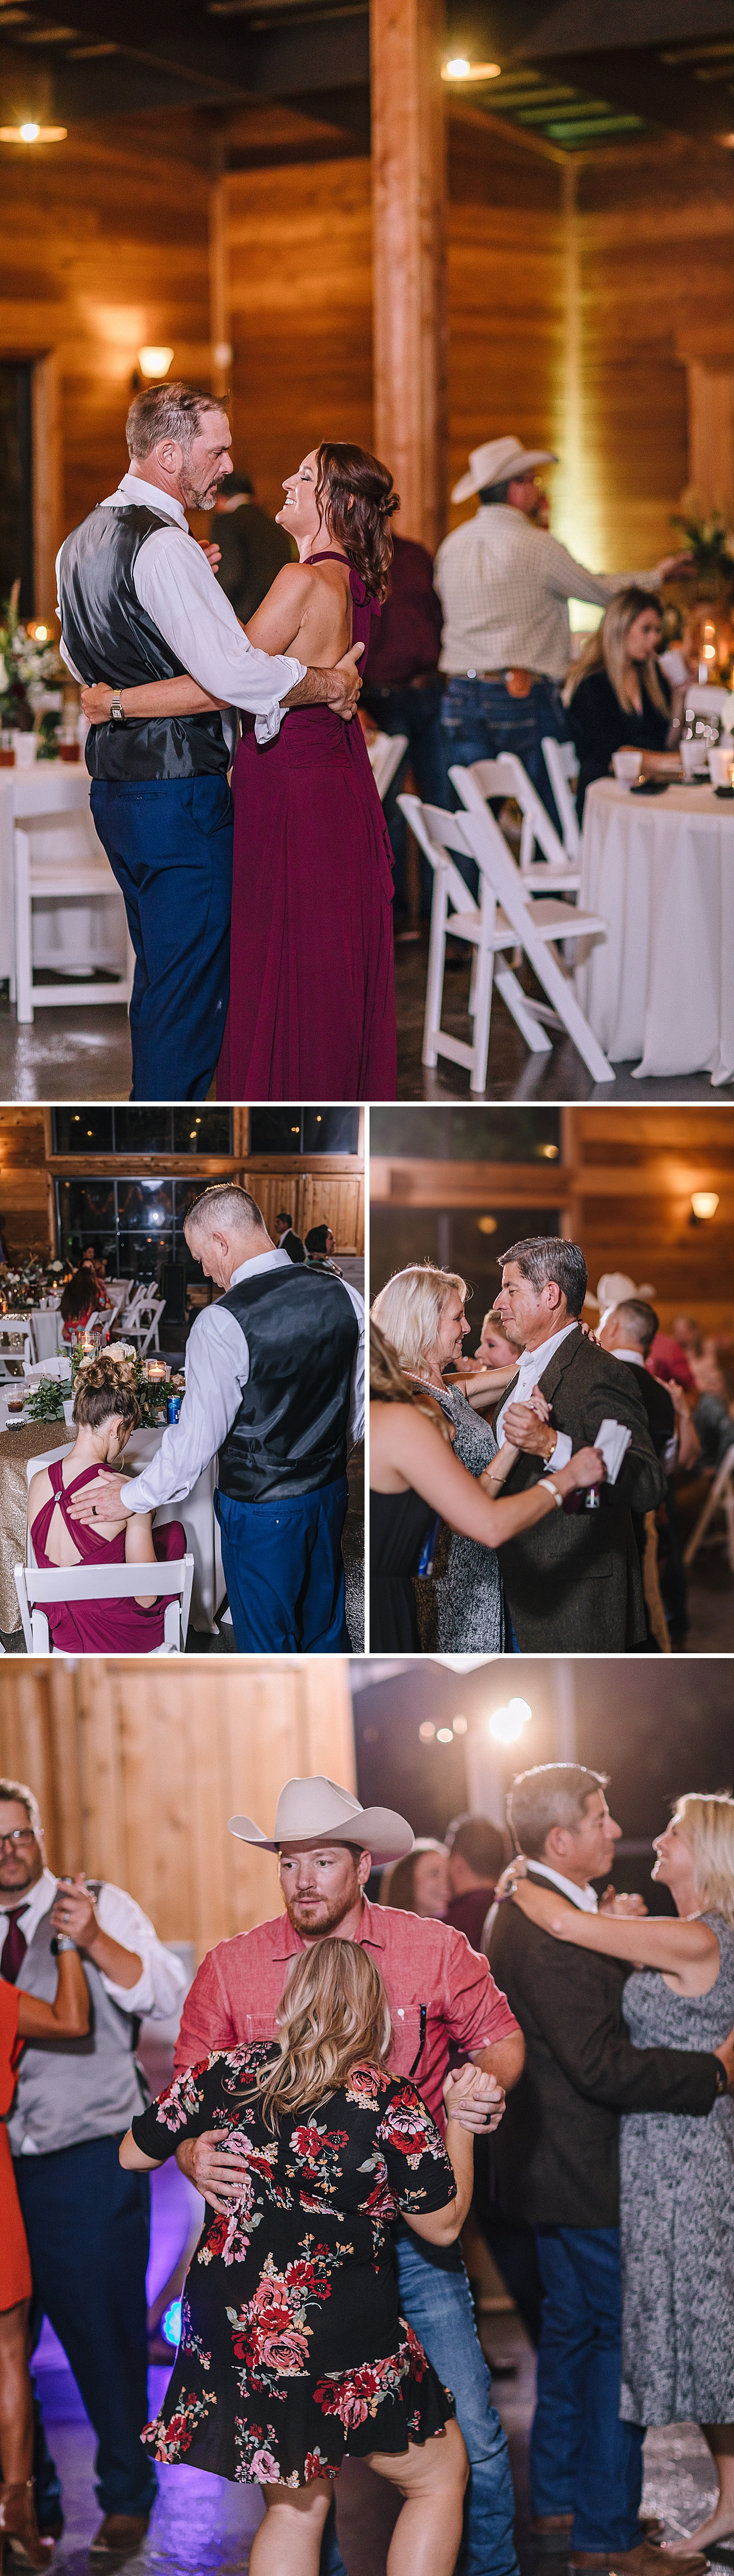 Geronimo-Oaks-Wedding-Venue-Seguin-Texas-Elegant-Navy-Burgundy-Wedding-Carly-Barton-Photography_0085.jpg